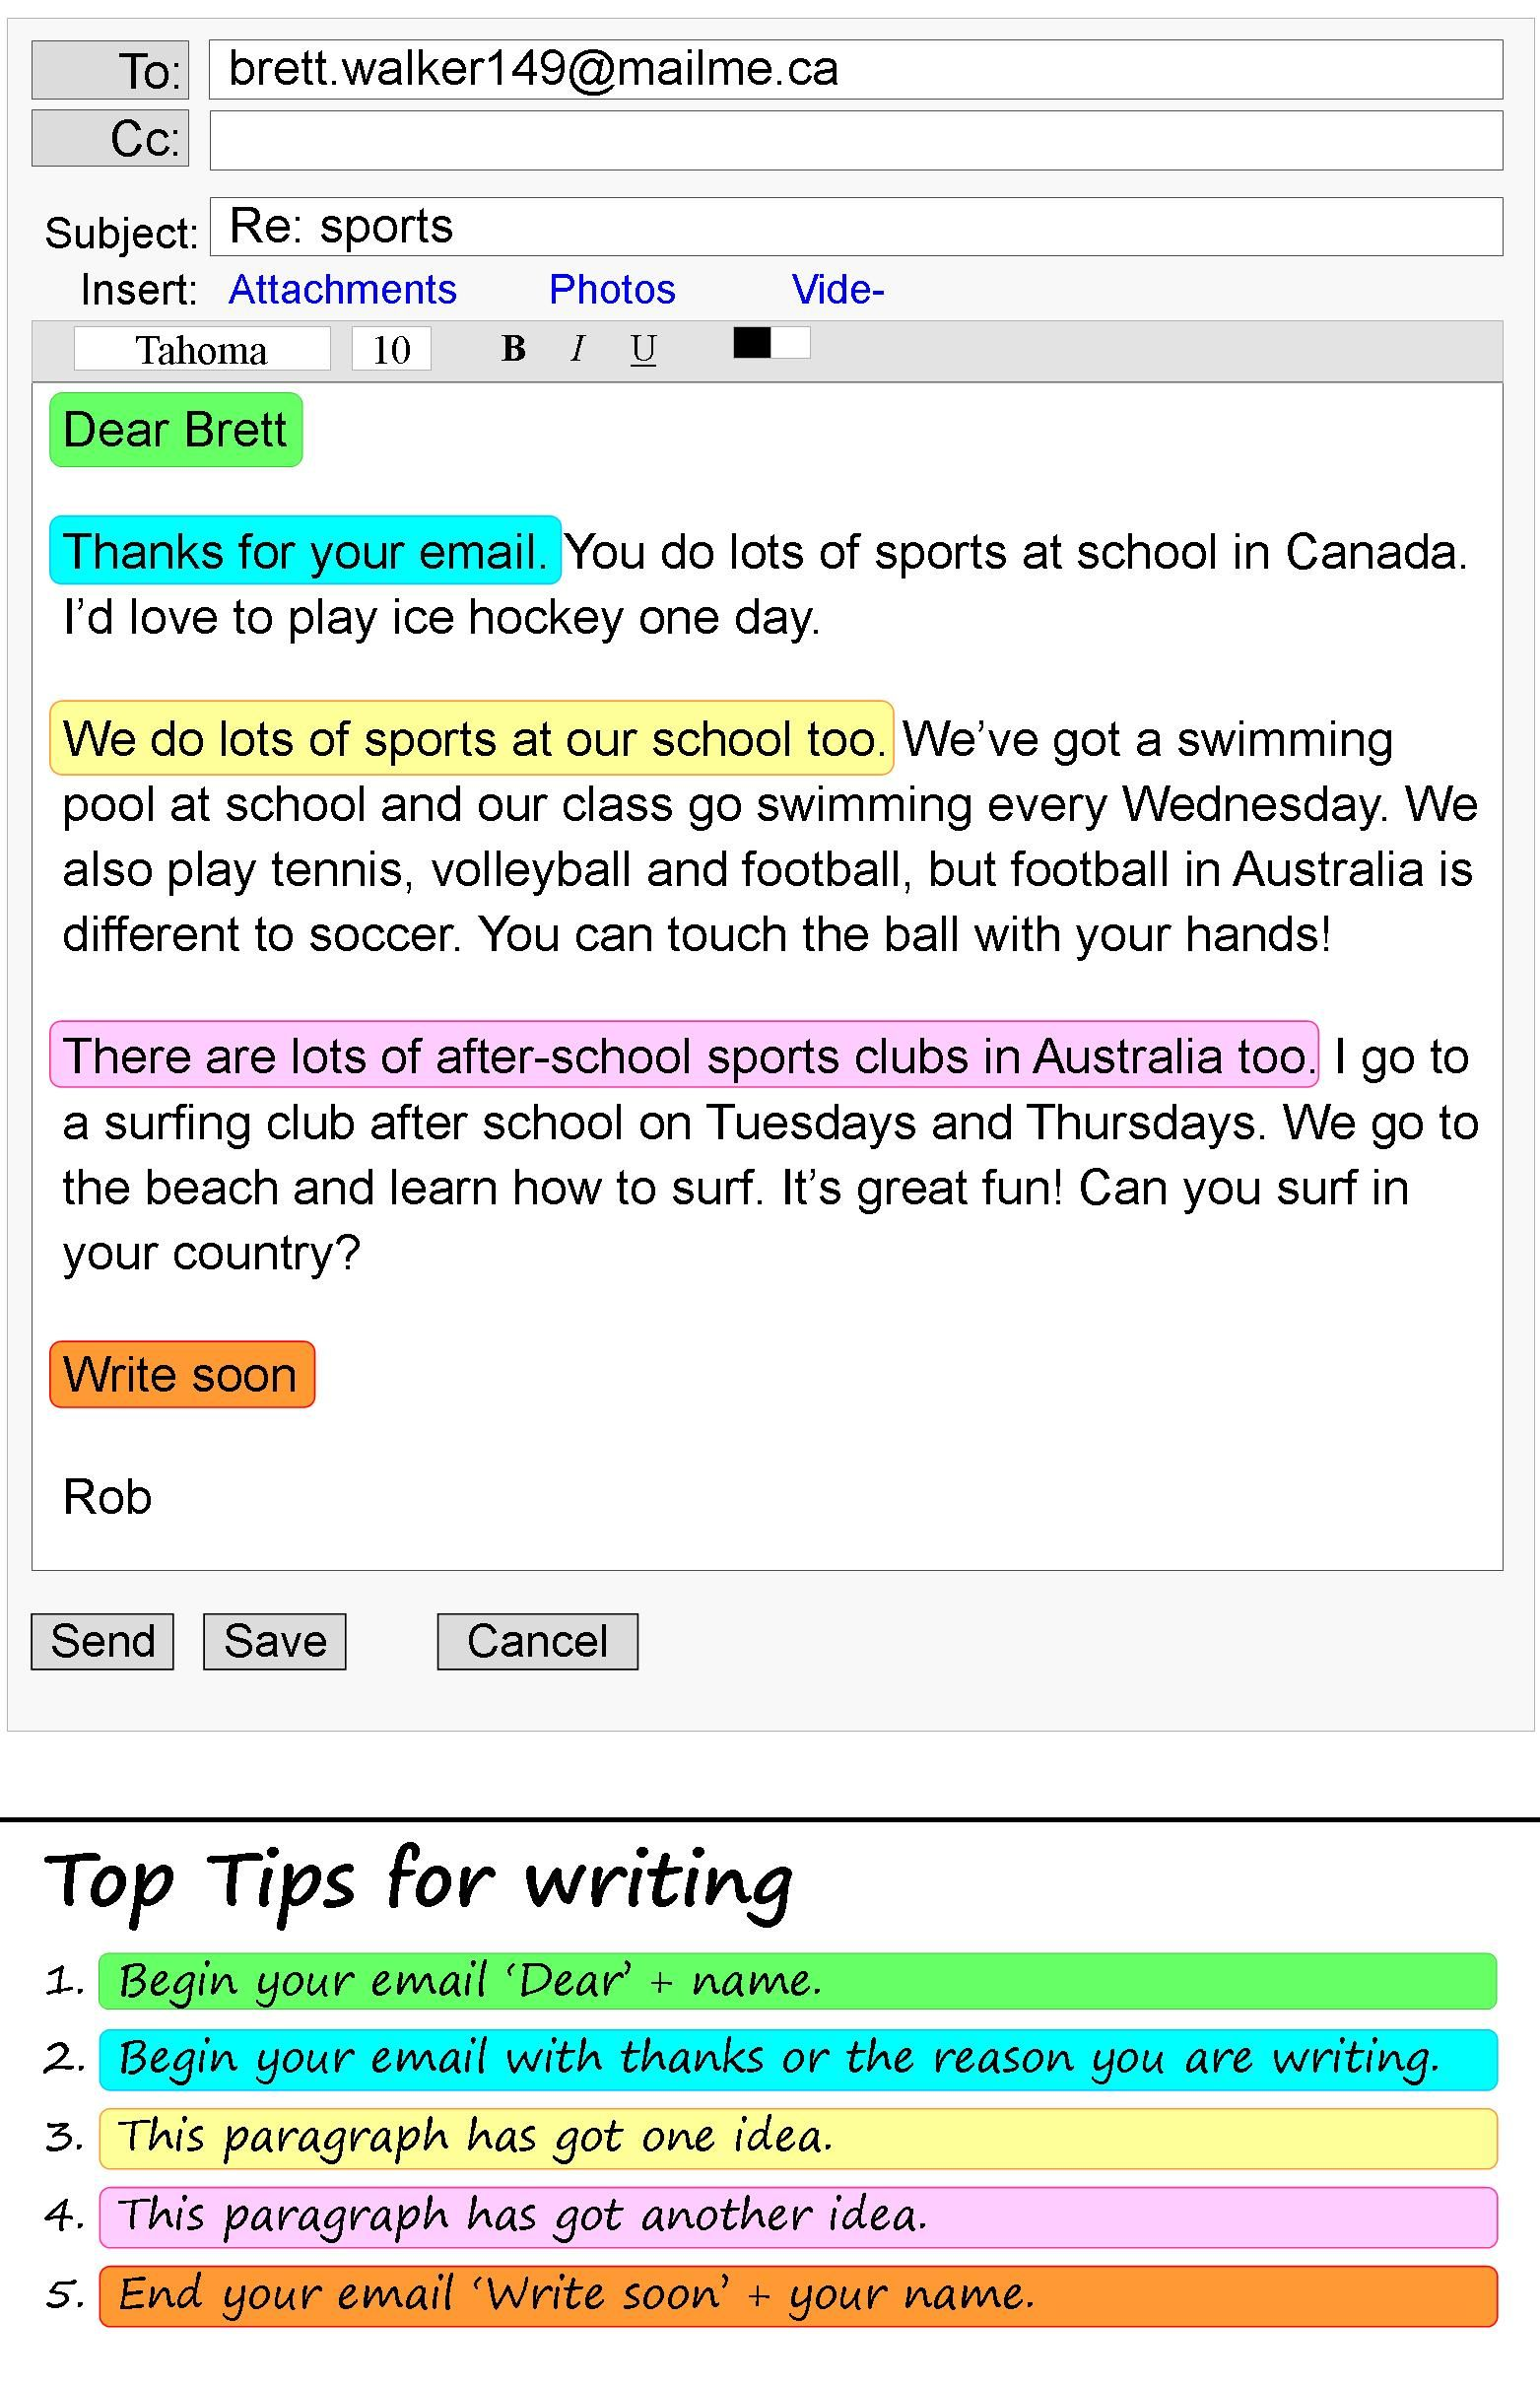 An Email About Sports